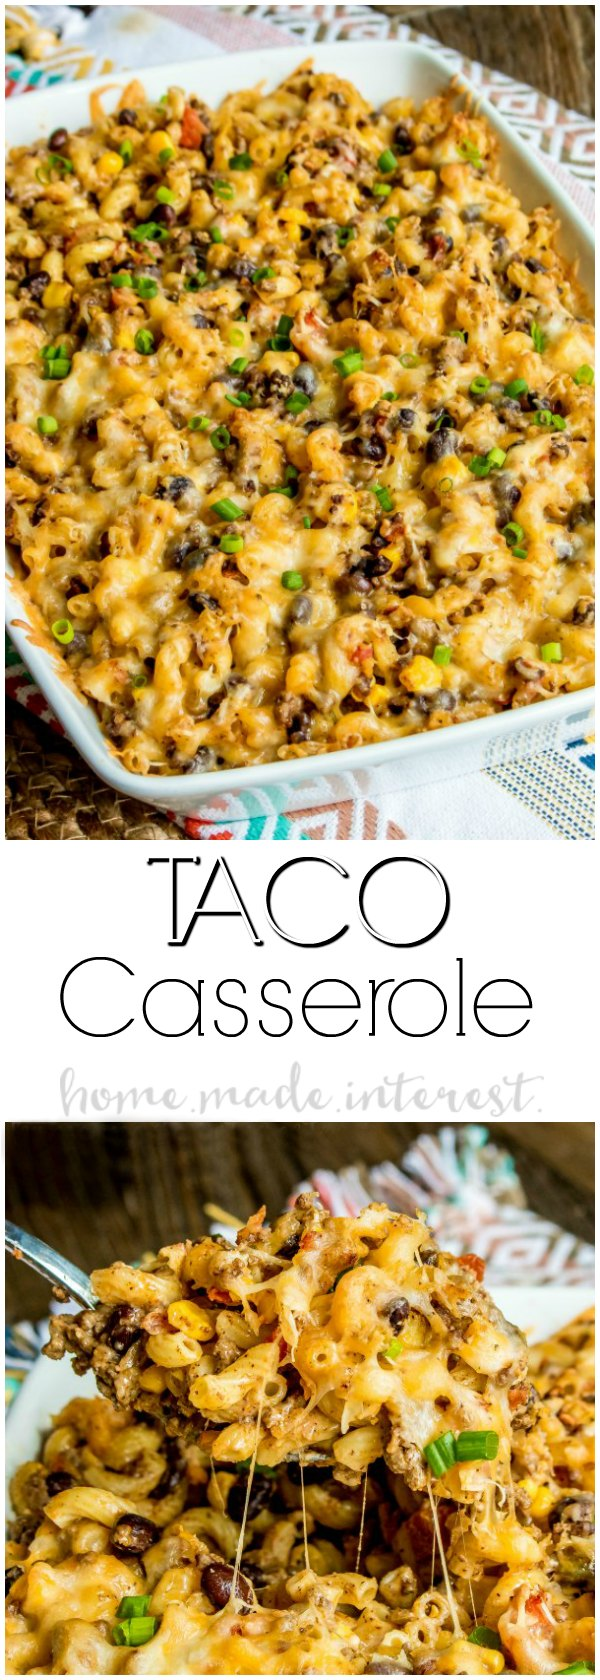 Taco Macaroni Casserole - This taco macaroni casserole is an easy taco bake recipe that makes a great weeknight dinner. Full of all of your favorite tex-mex flavors this is a taco casserole recipe that puts a fun spin on taco night! Turn your typical macaroni and cheese recipe into a spicy southwest comfort food with this easy taco macaroni casserole.